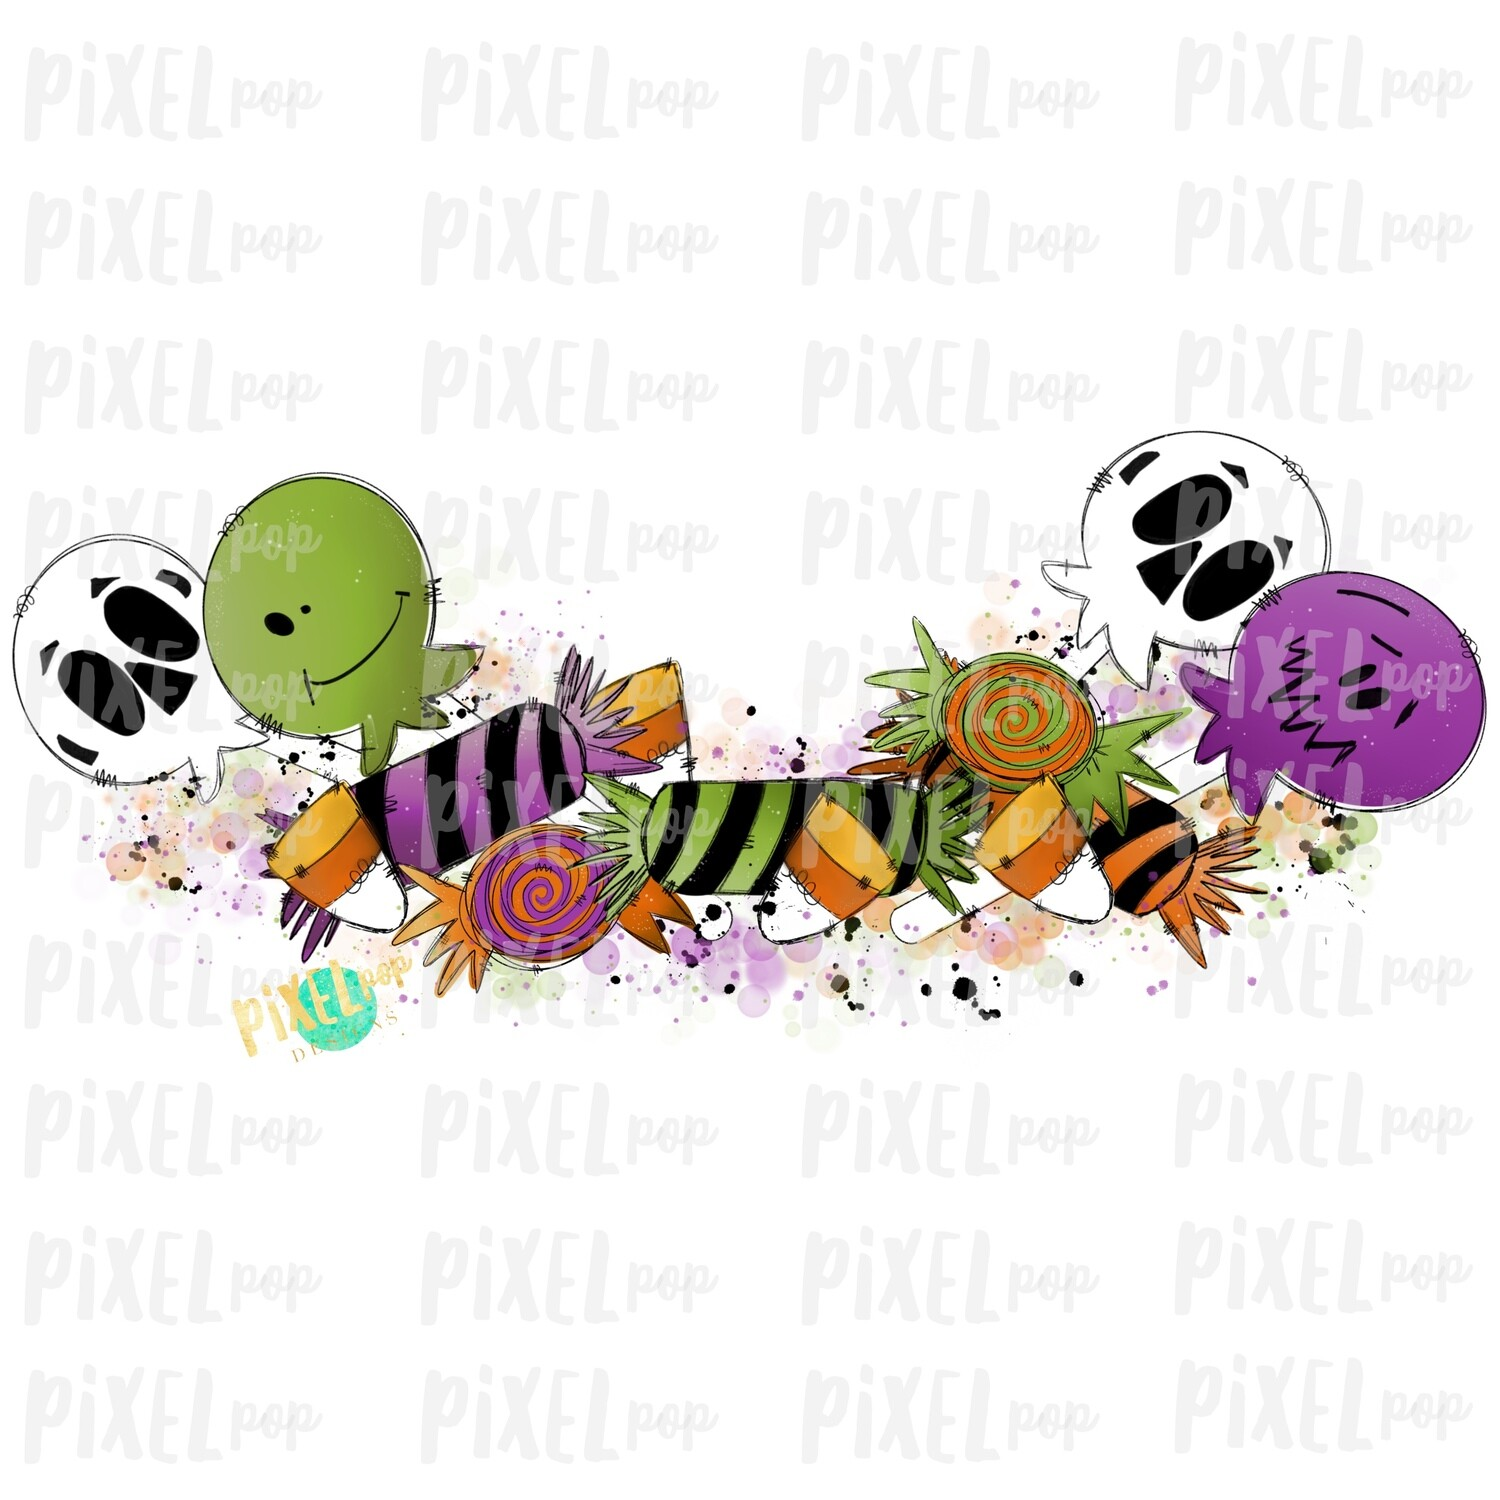 Spooky Halloween Candy Garland Embellishment Element Sublimation PNG | Hand Drawn Design | Sublimation | Digital Download | Printable | Art